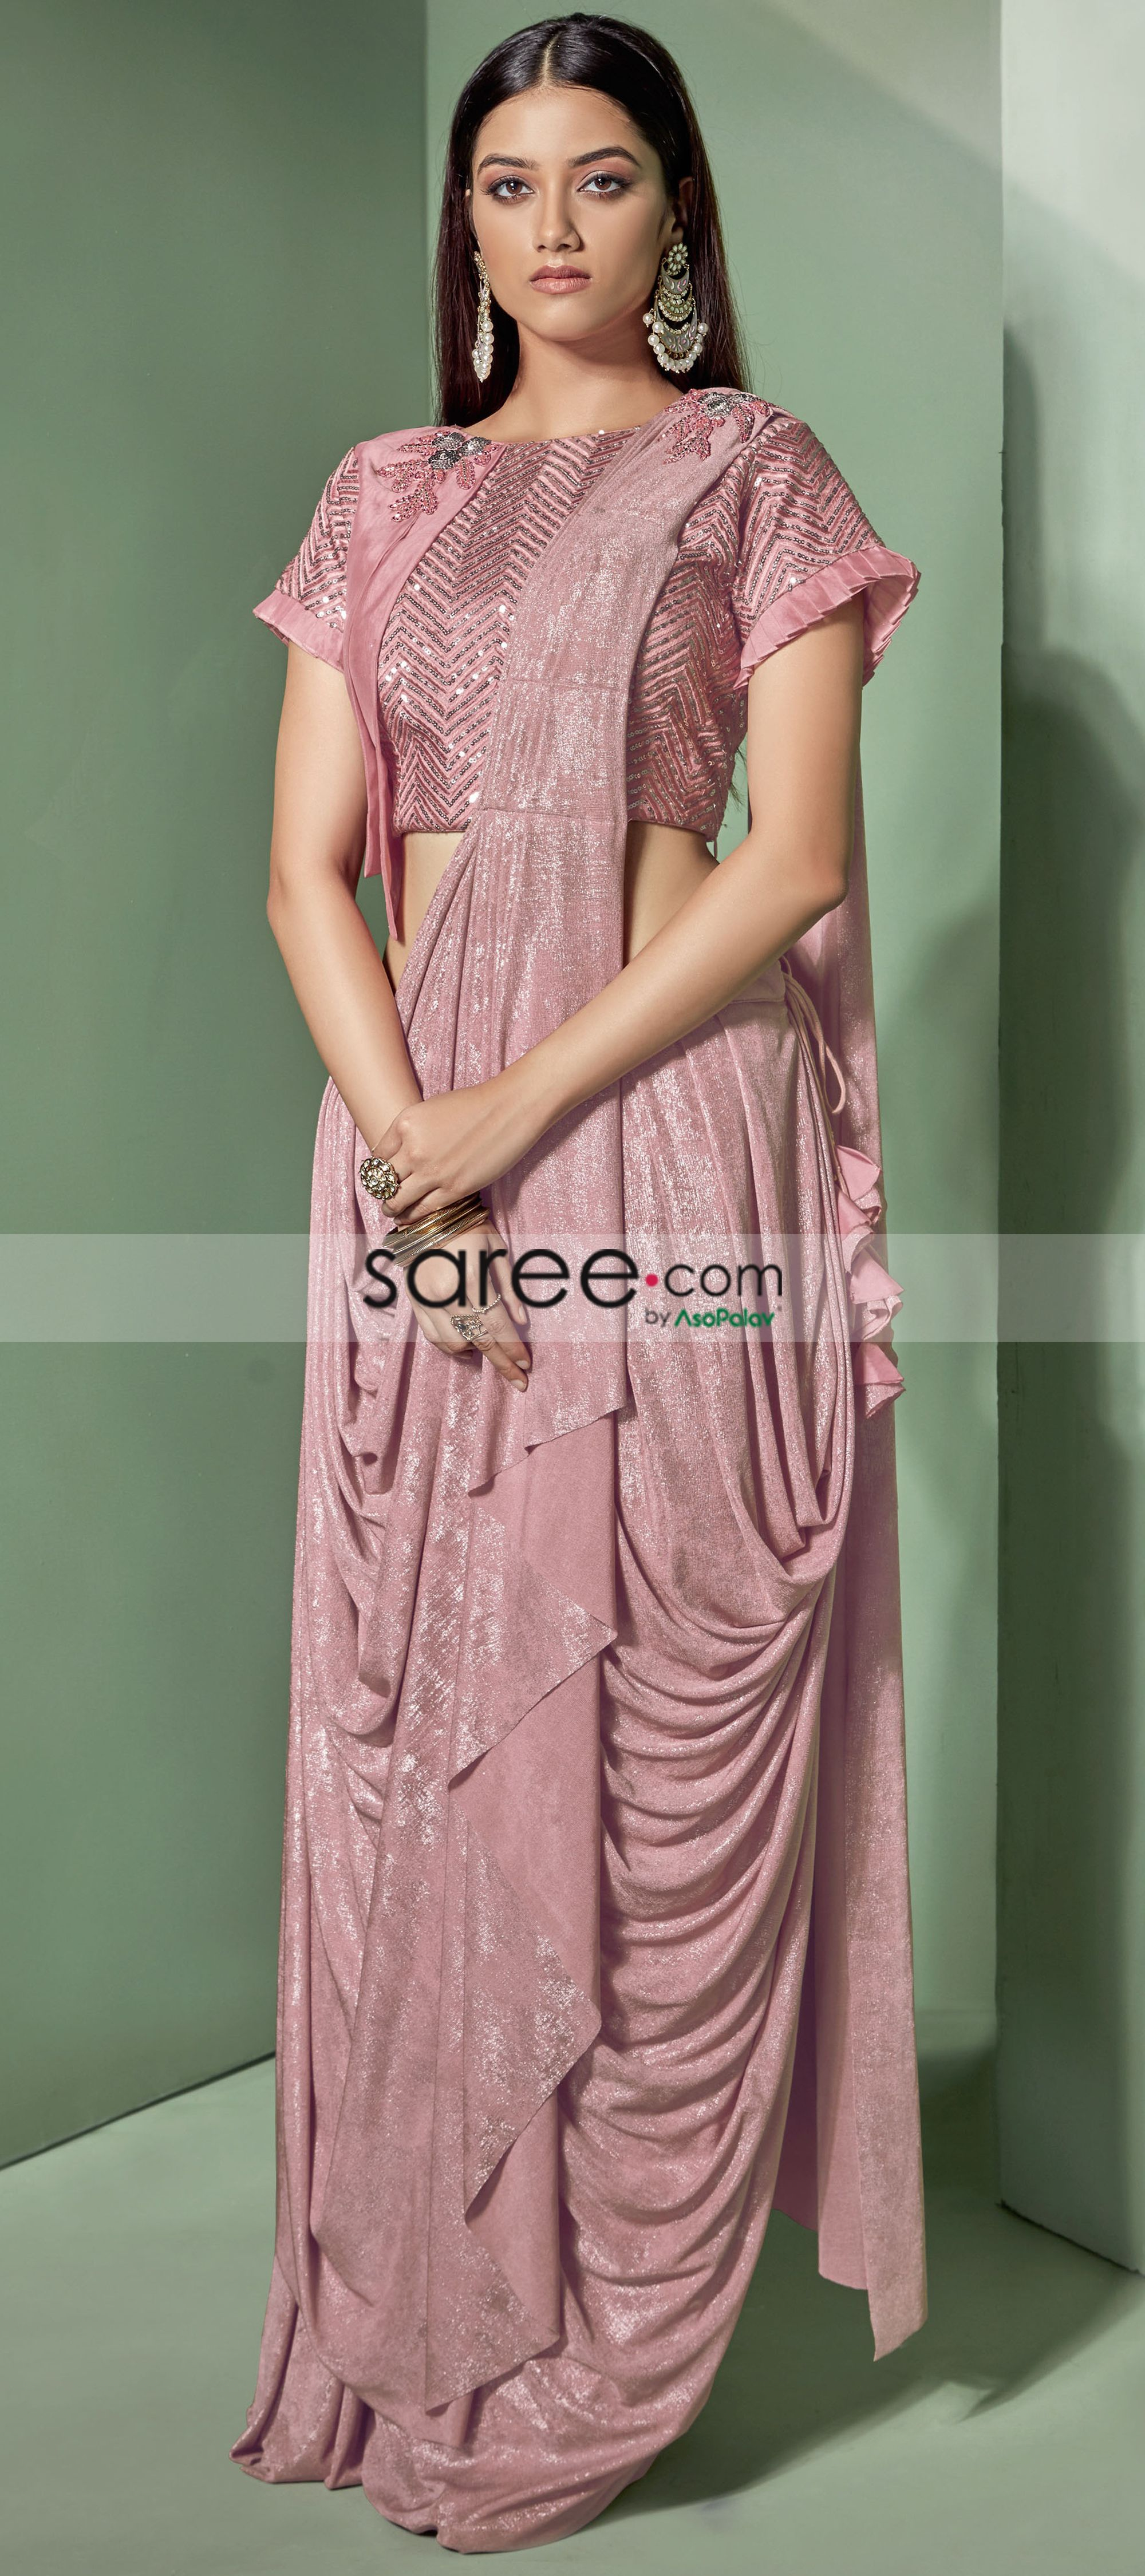 Pink Lycra Fancy Saree with Designer Blouse | Lehenga style saree, Party wear sarees, Party wear ...